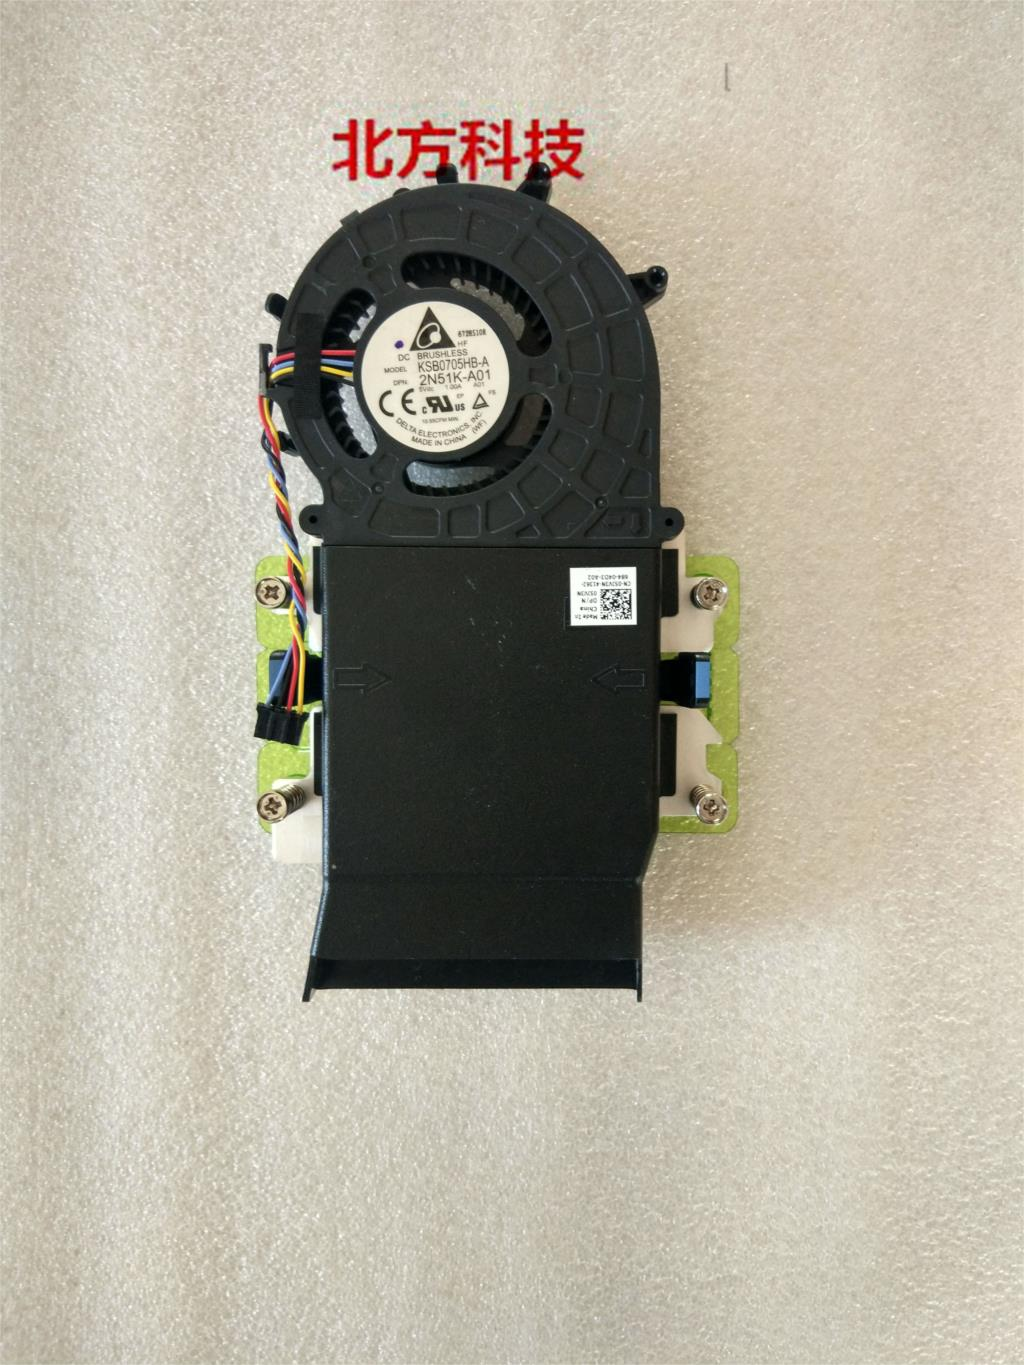 brand new FOR DELL PVB070E05N-P02 Graphics card cooling fan 7040M 9020M MINI 5JV3N image